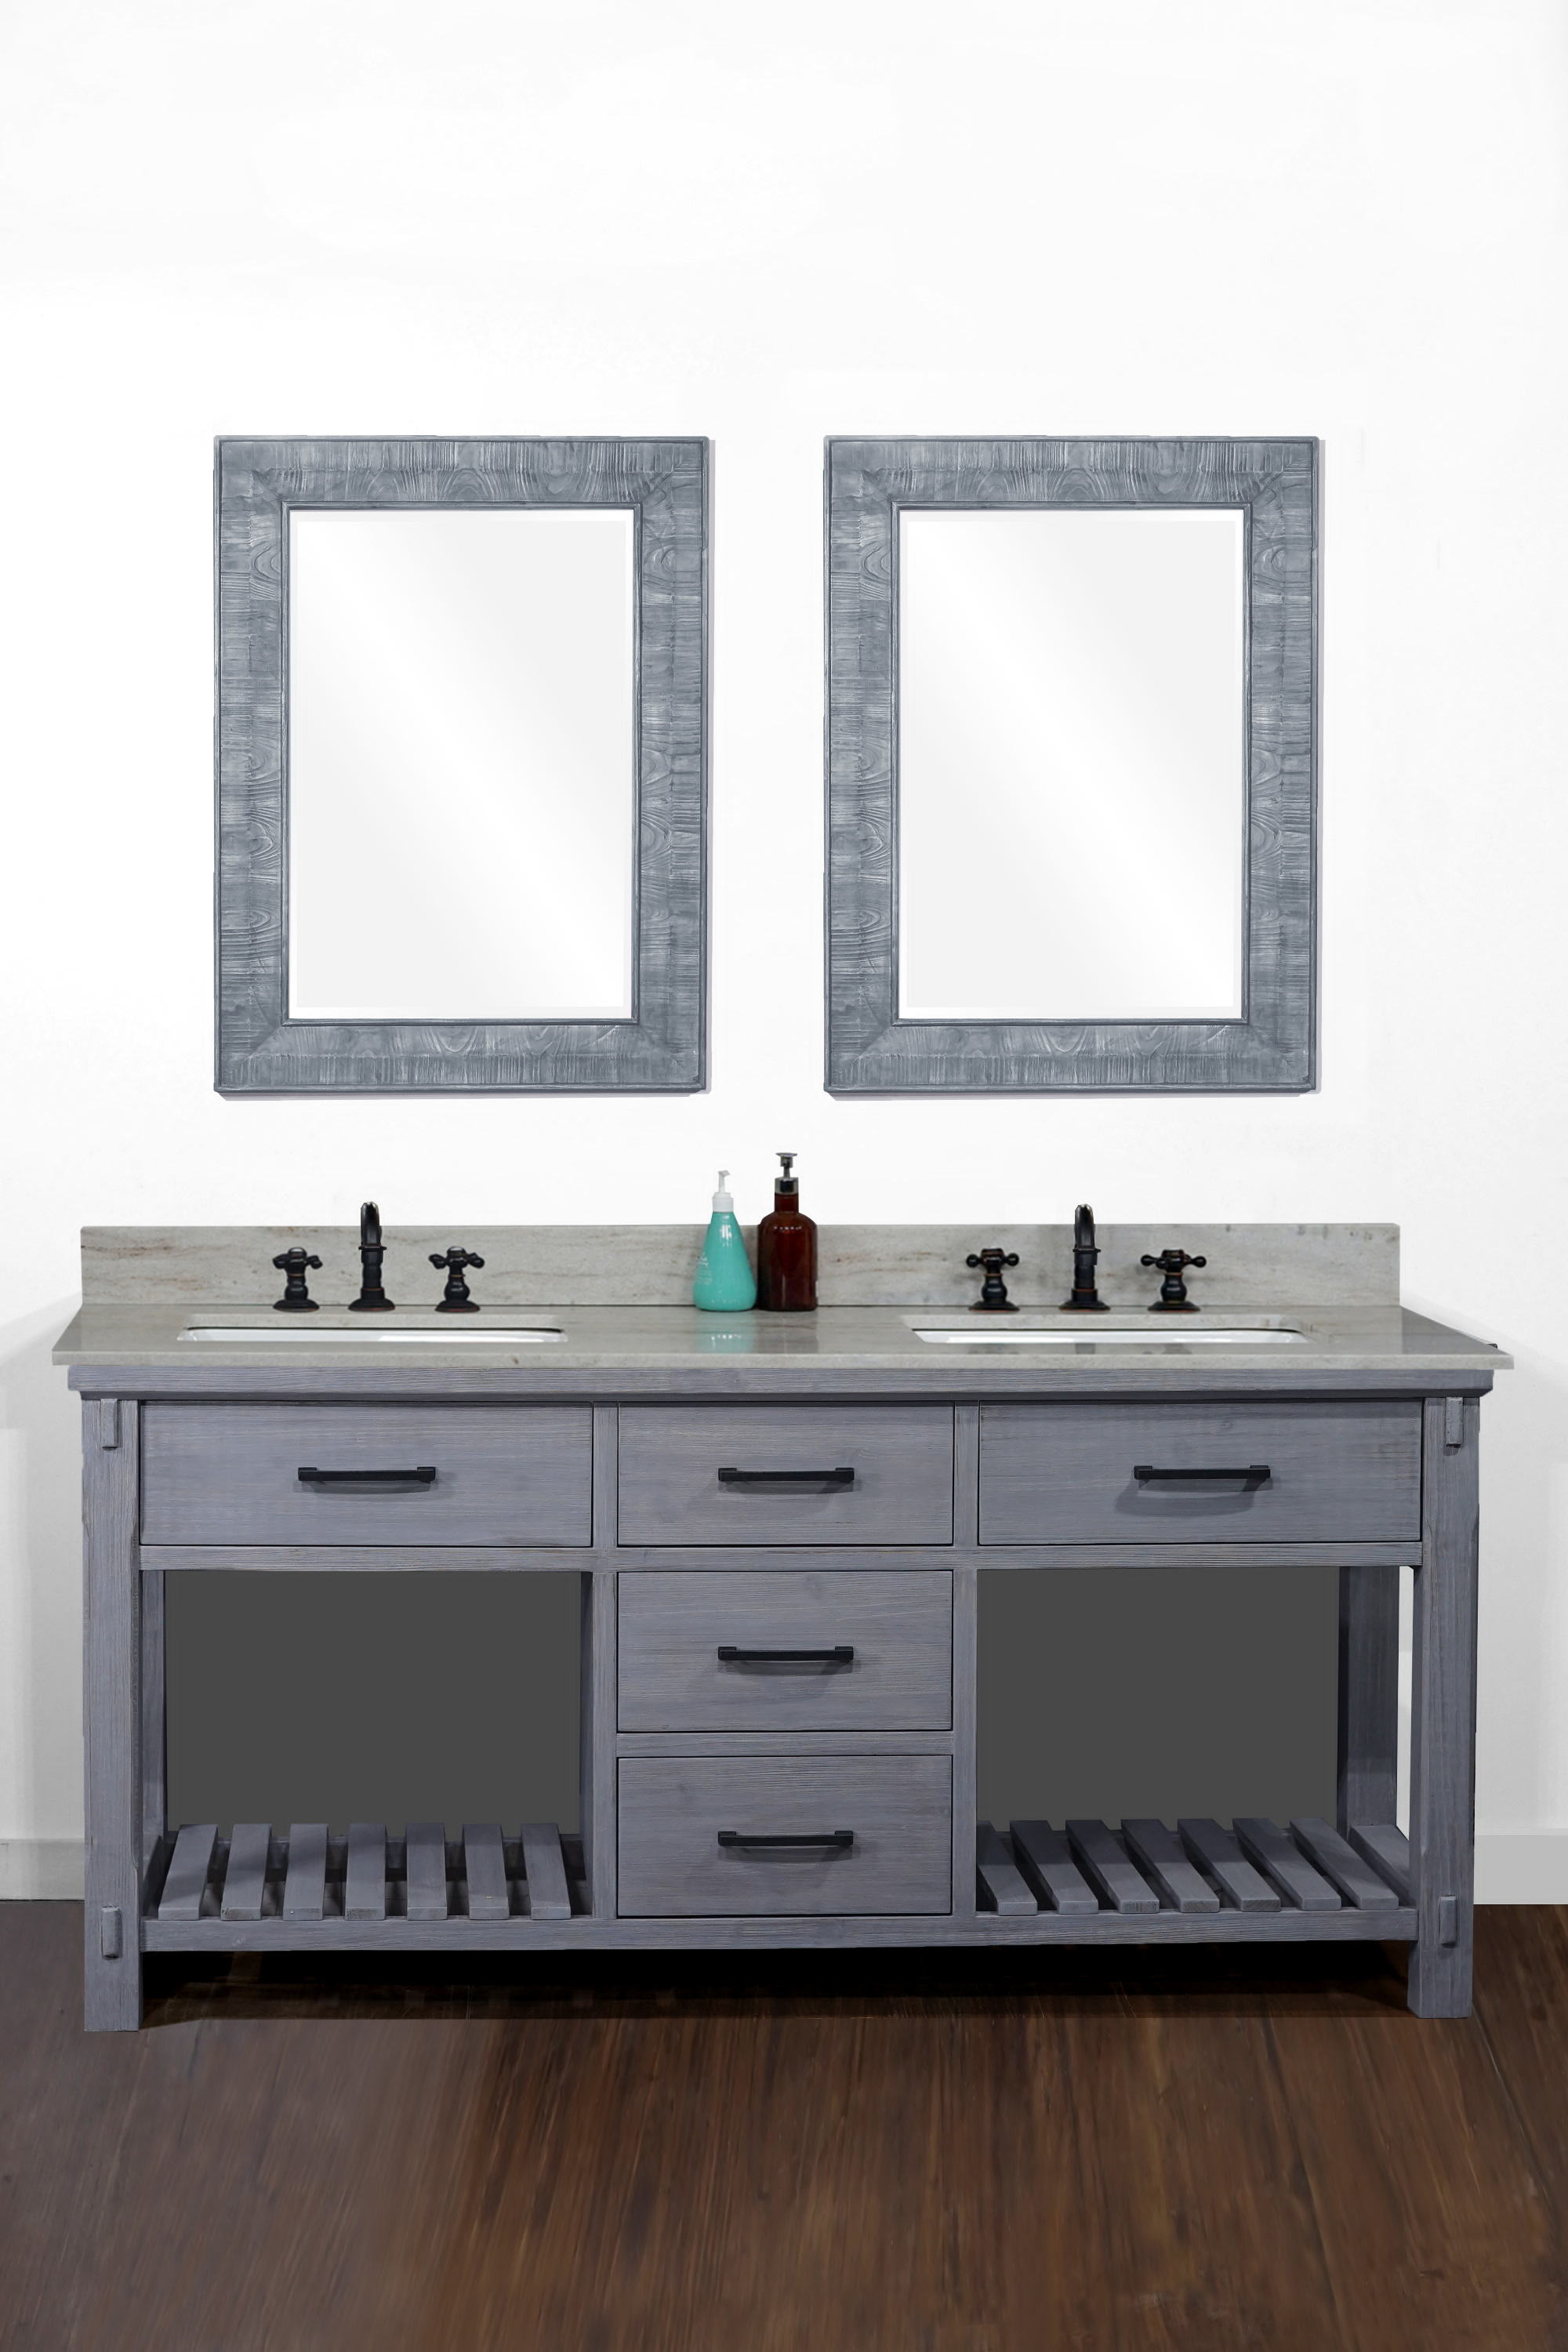 """72"""" Rustic Solid Fir Double Sink Vanity in Blue Grey Driftwood - No Faucet with Countertop Options"""